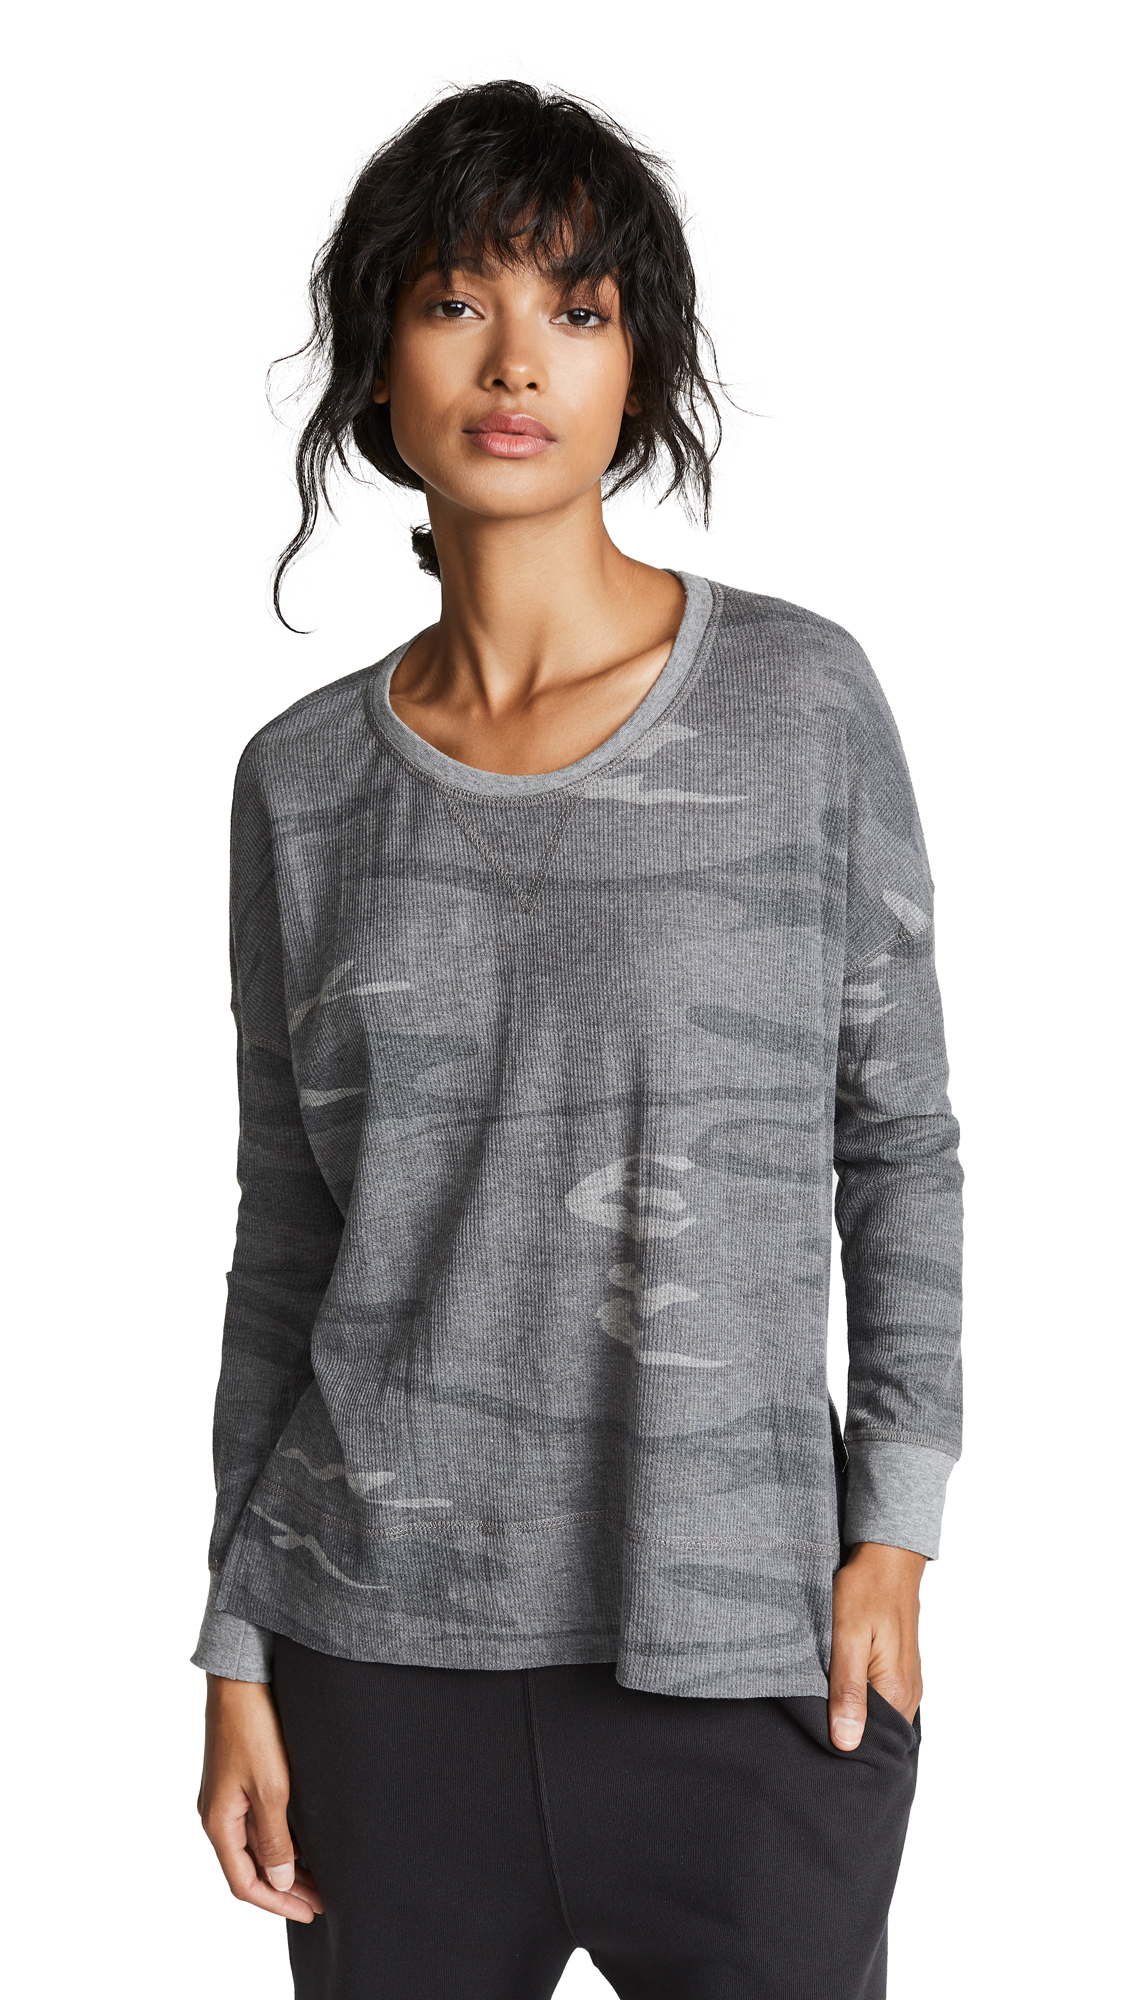 THE EMERSON CAMO THERMAL TEE from Shopbop